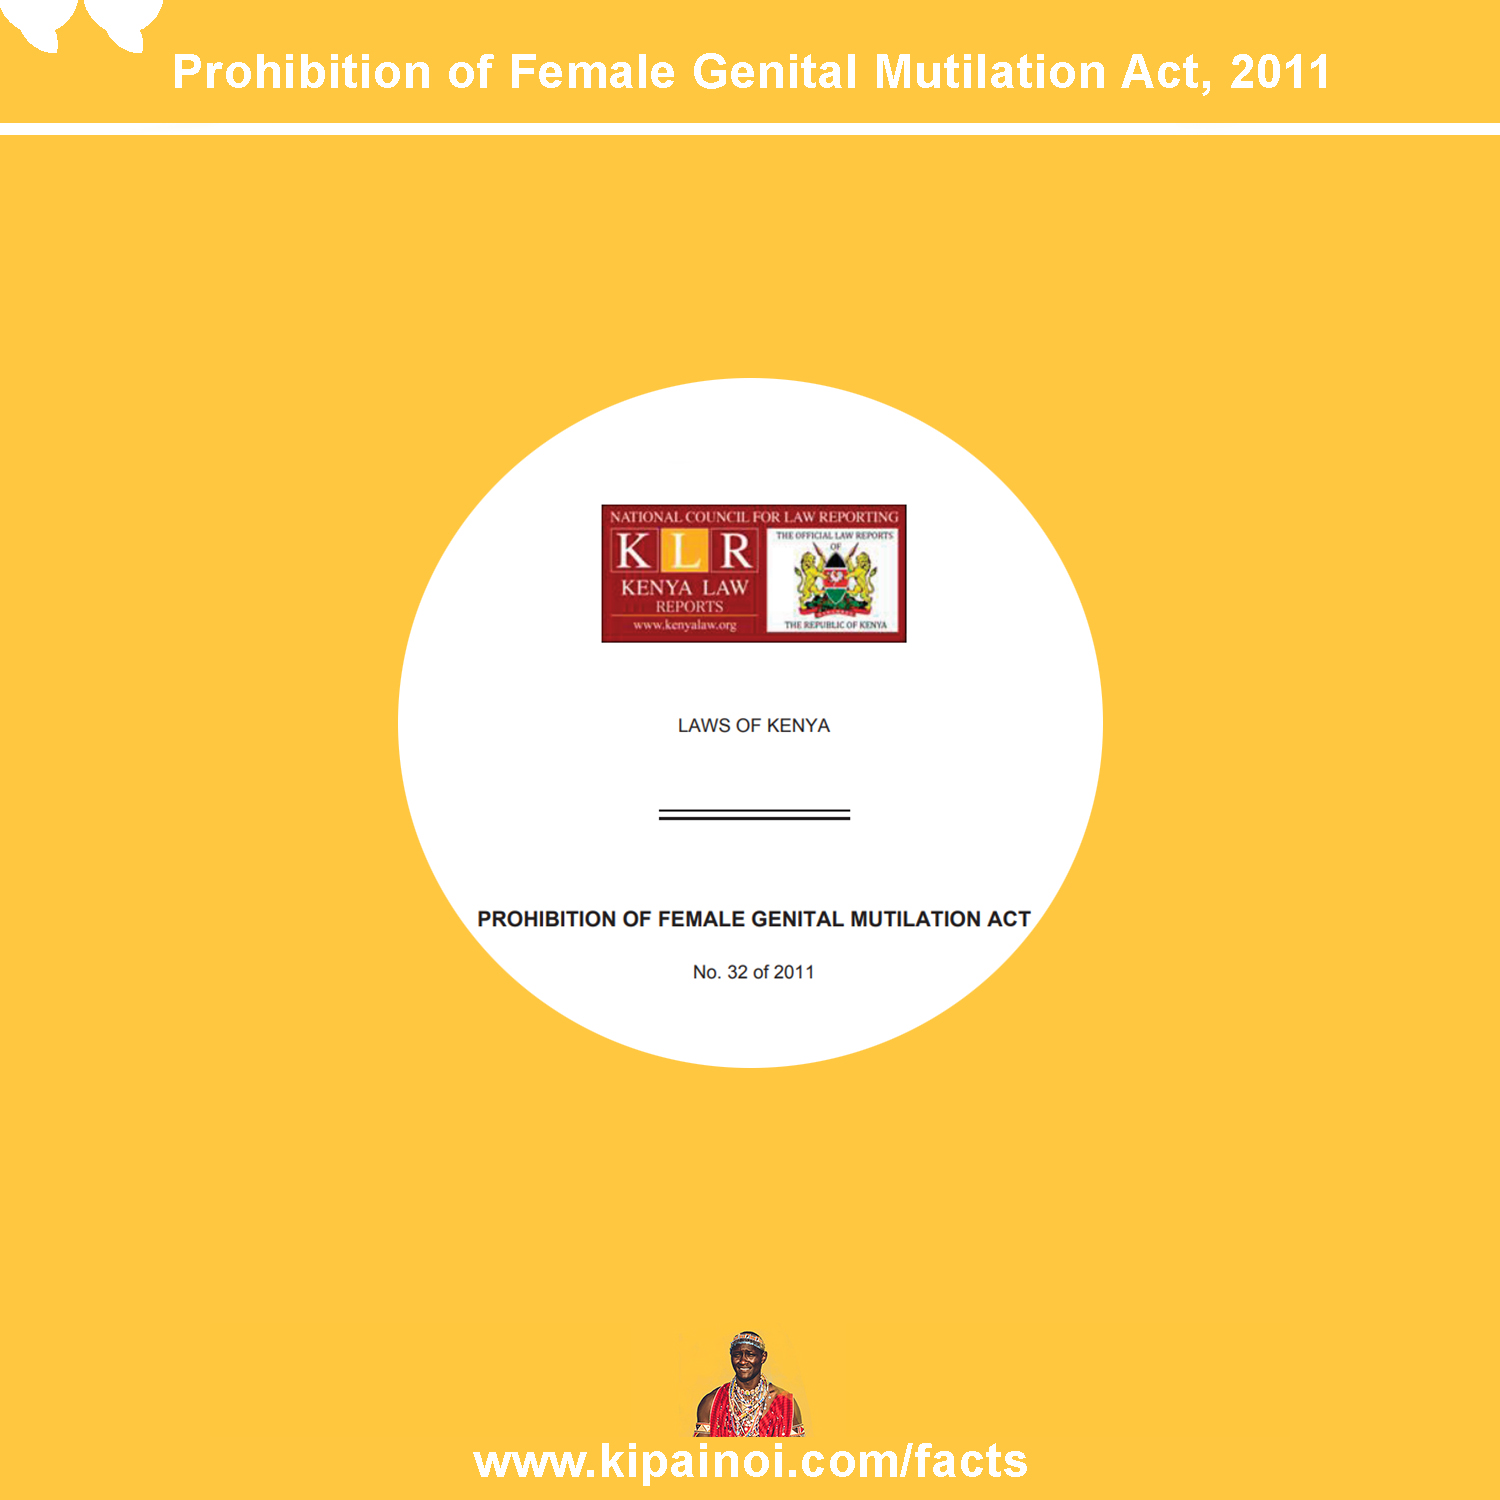 Prohibition of Female Genital Mutialation Act – Tweetables